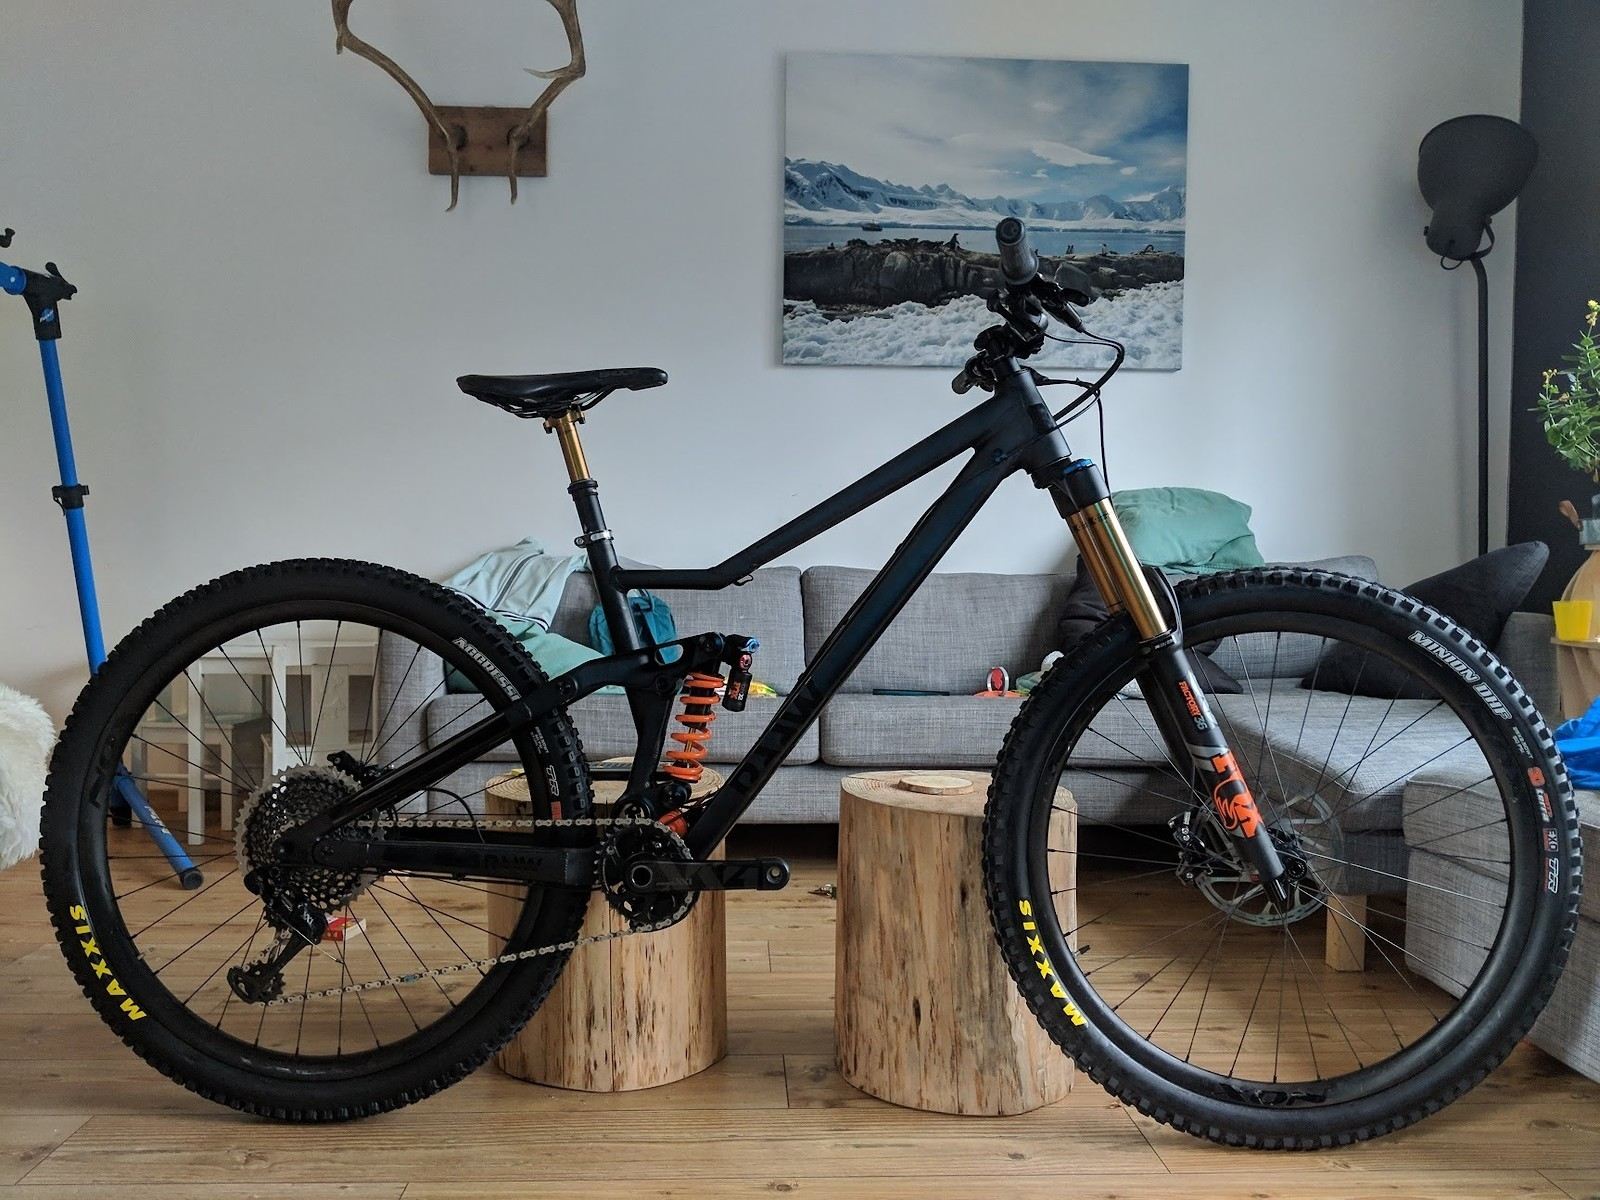 RAAW Madonna black - 2019 Vital Bike of the Day Collection - Mountain Biking Pictures - Vital MTB